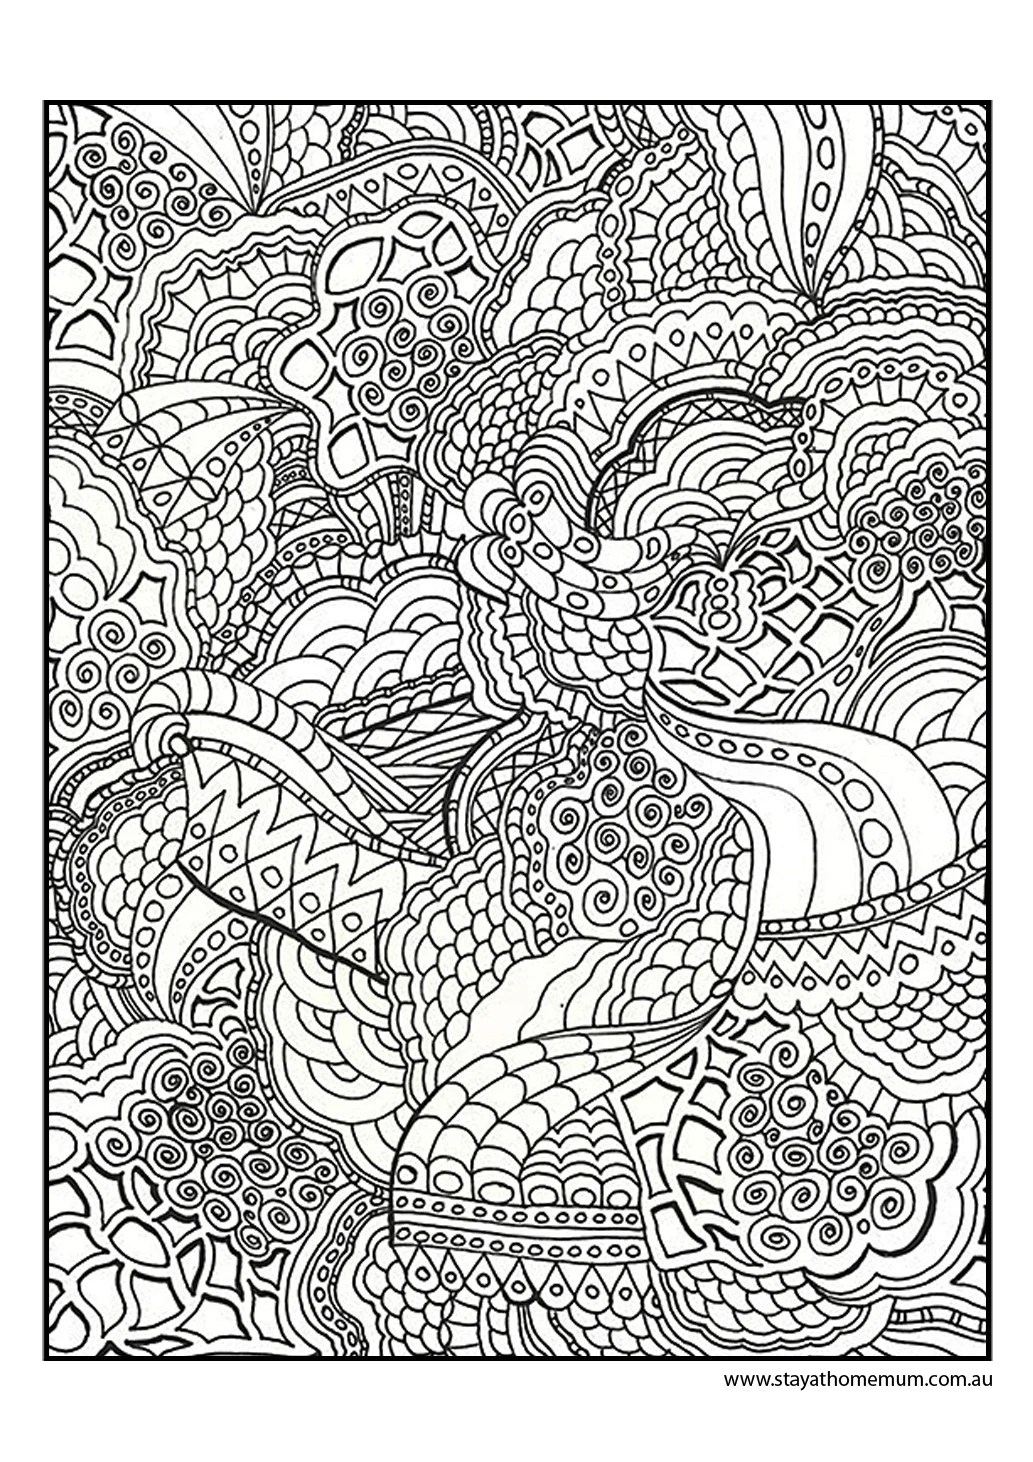 Printable Colouring Pages for Kids and Adults   printable colouring pages for adults